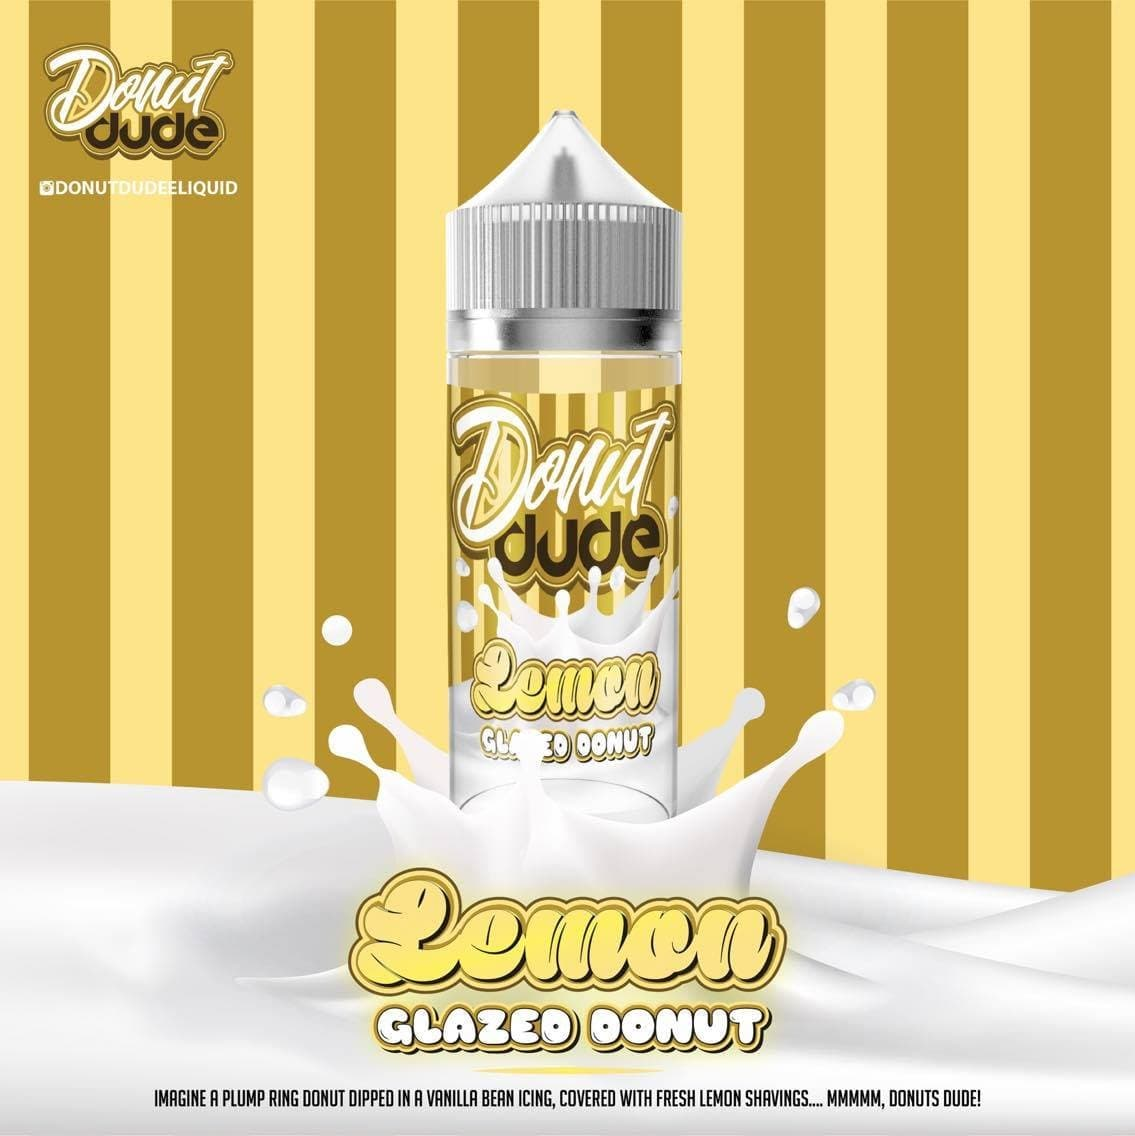 Donut dude - Lemon - 50ml